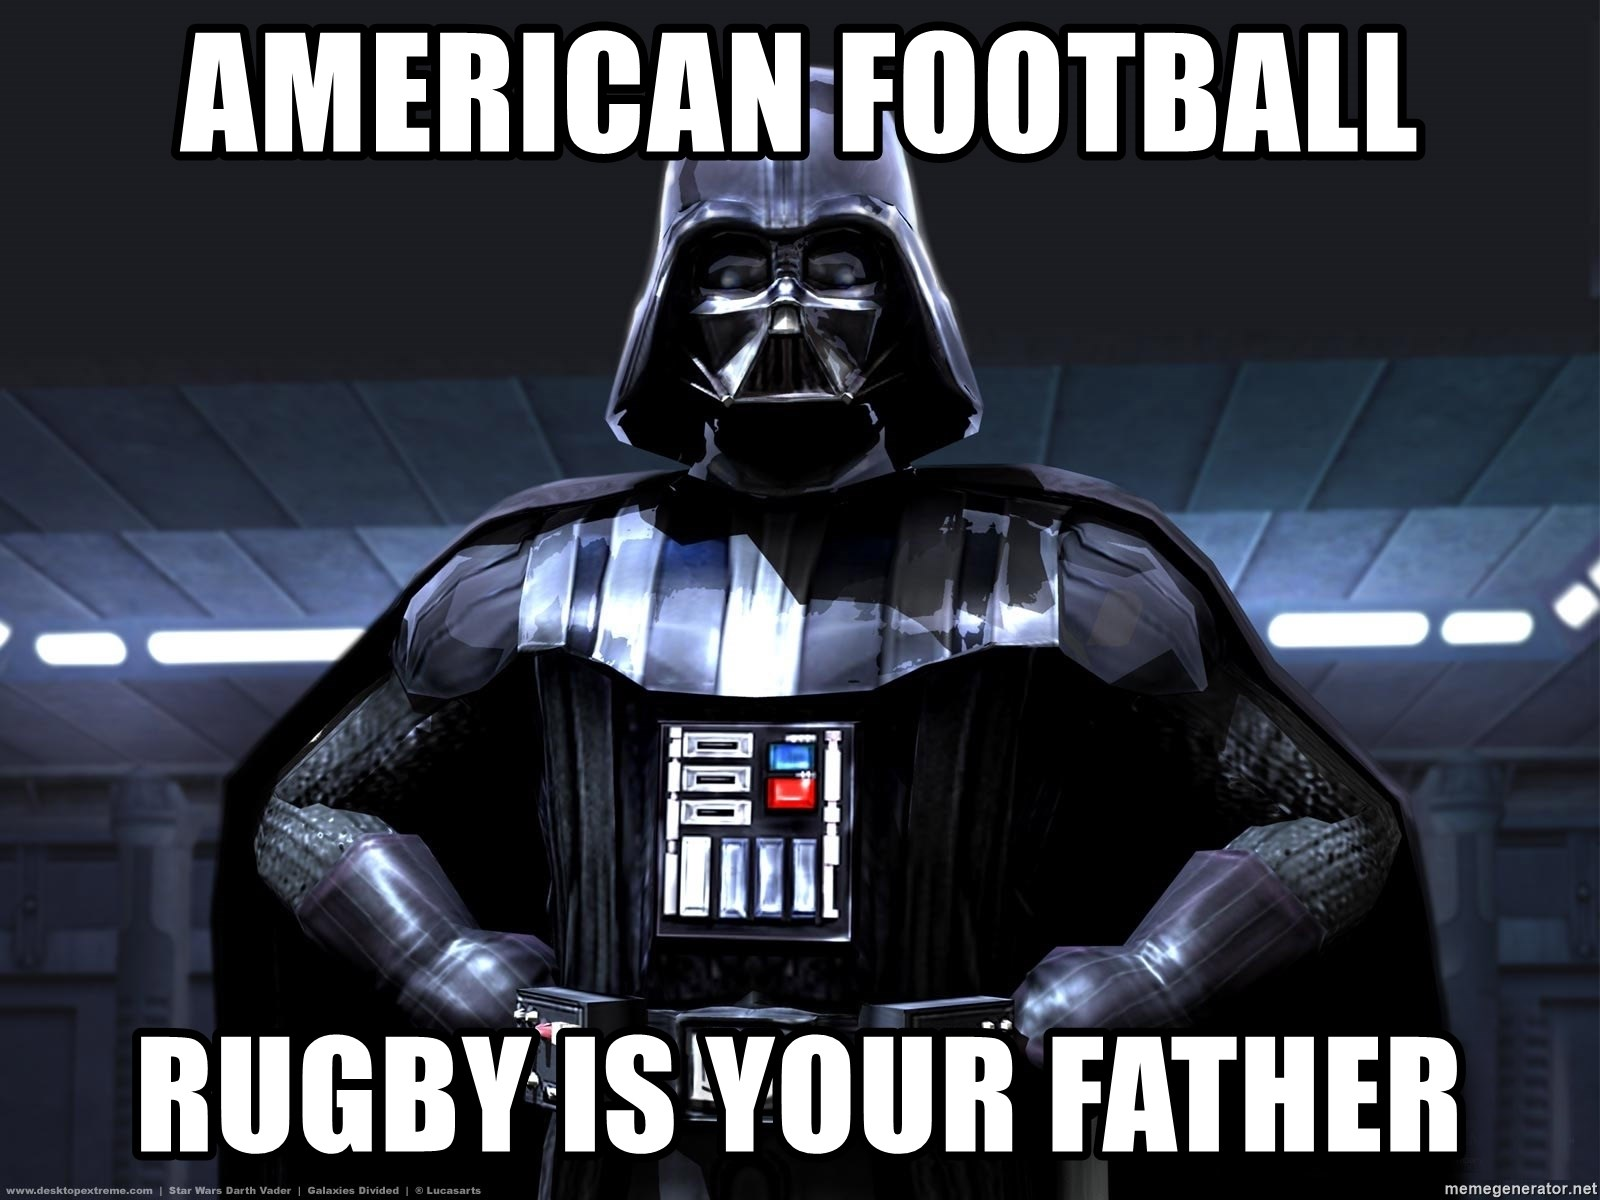 American Football Rugby Is Your Father Star Wars Darth Vader Meme Generator